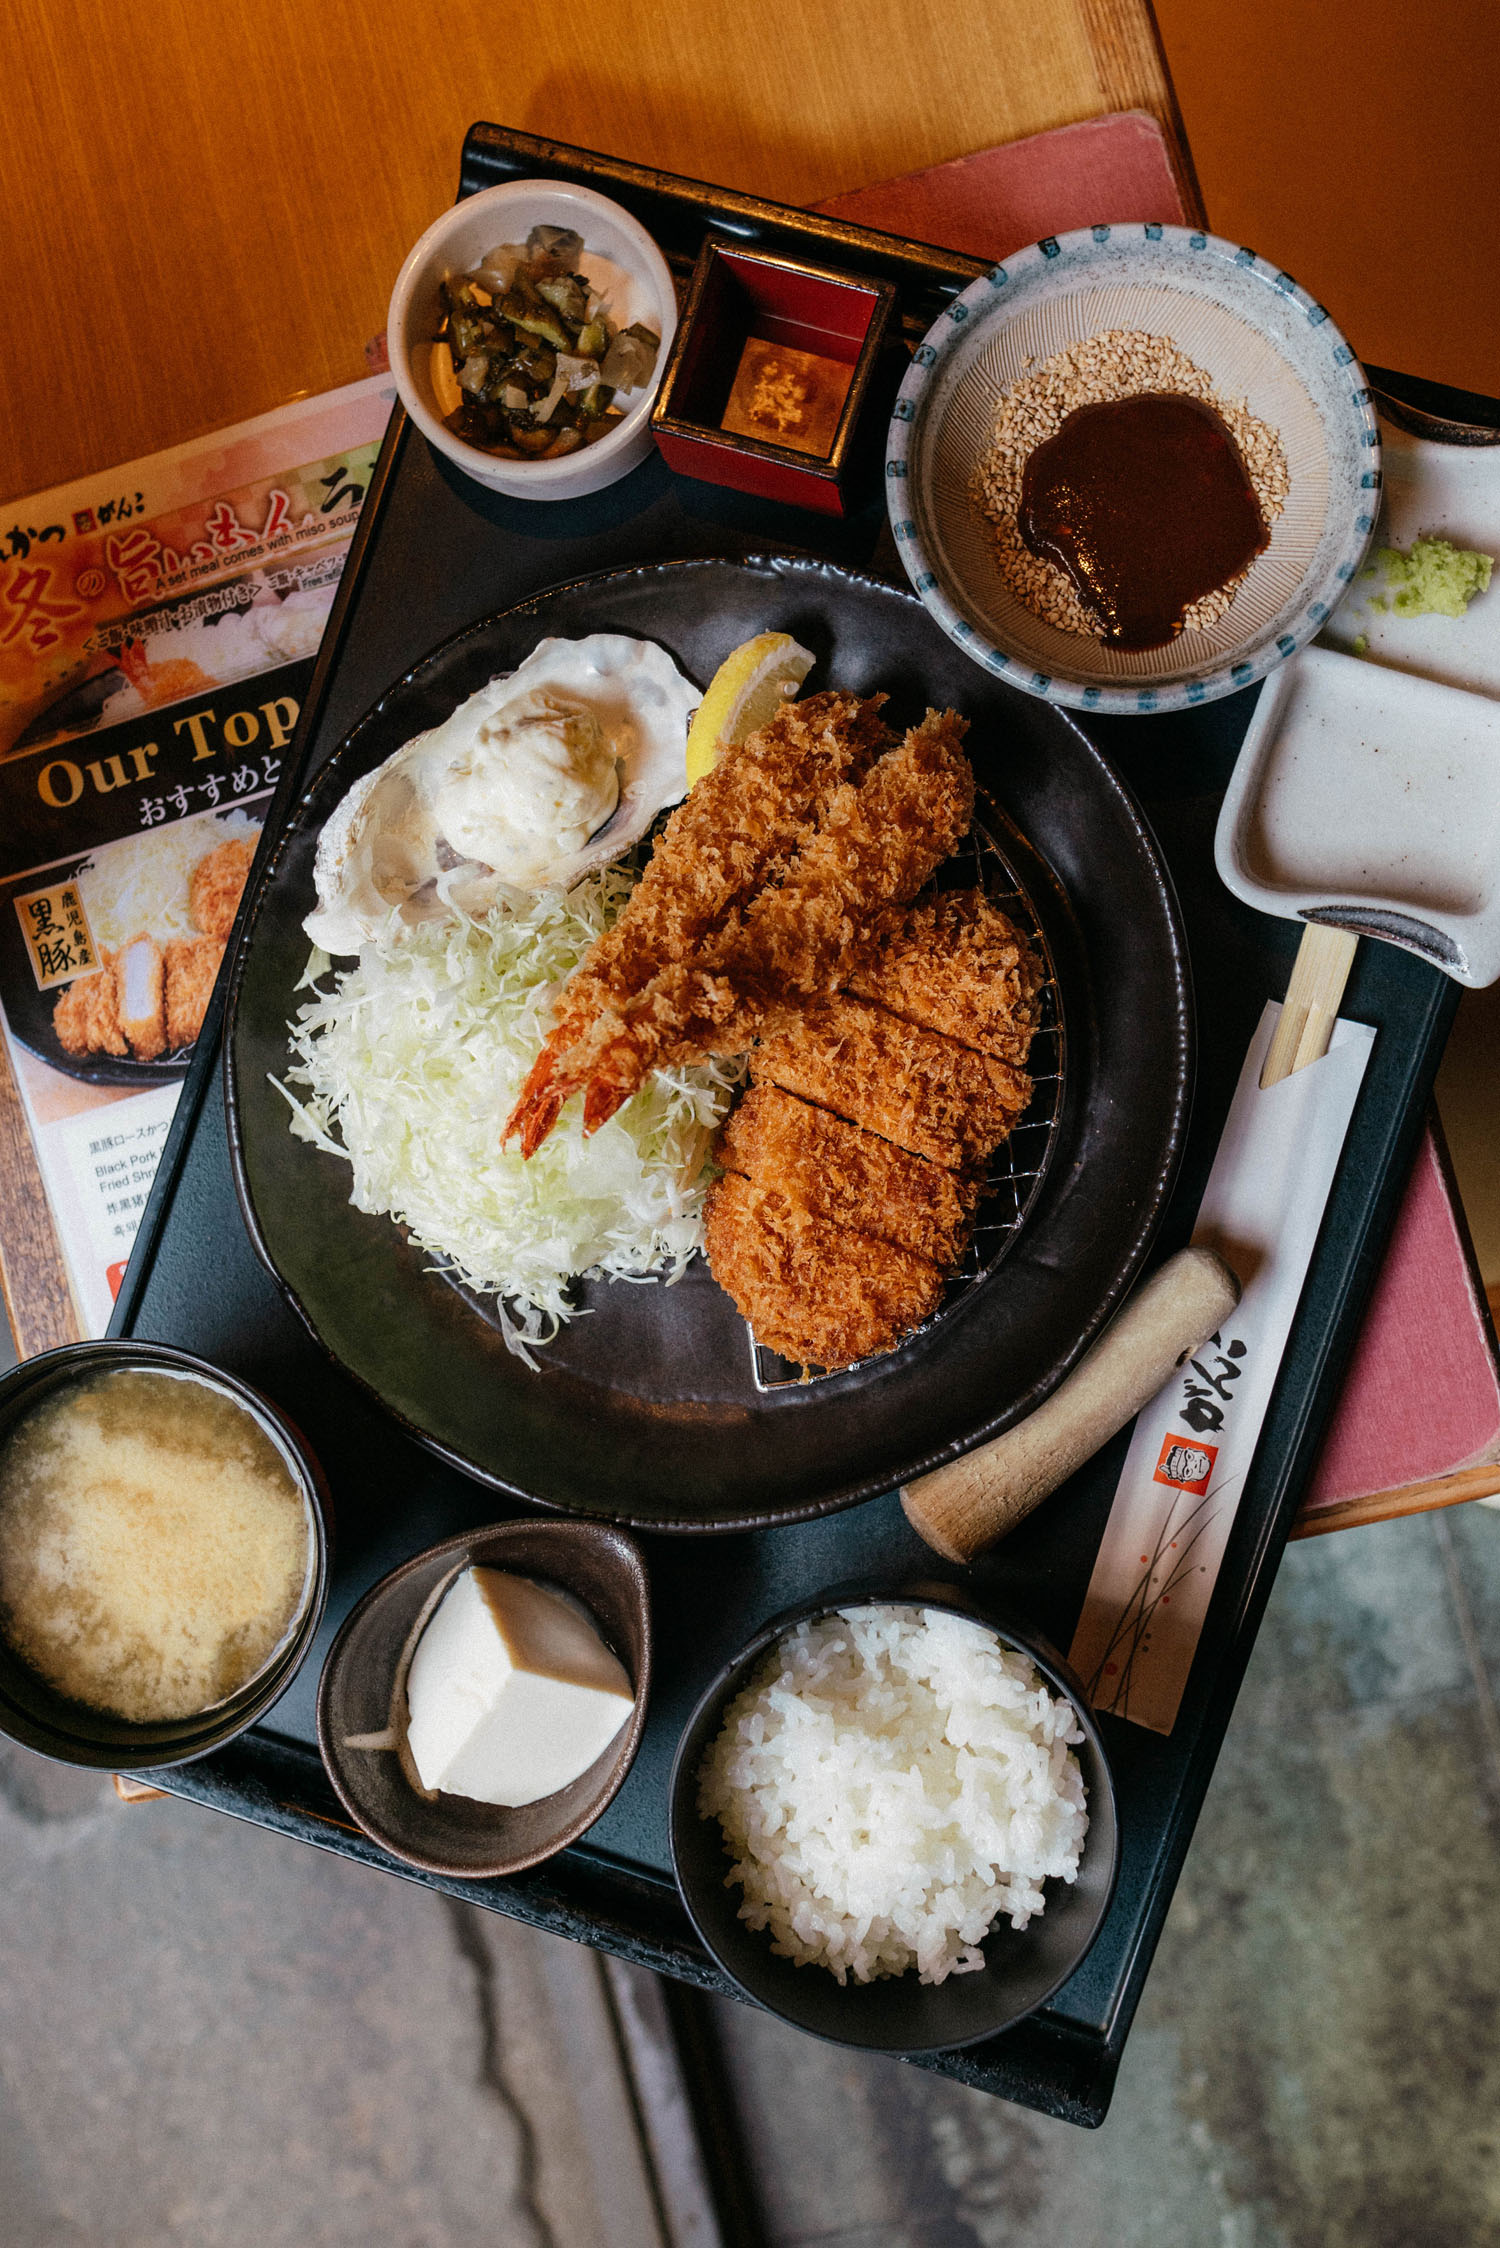 Took the train to Nara! First meal of the day at  Tonkatsu Ganko .